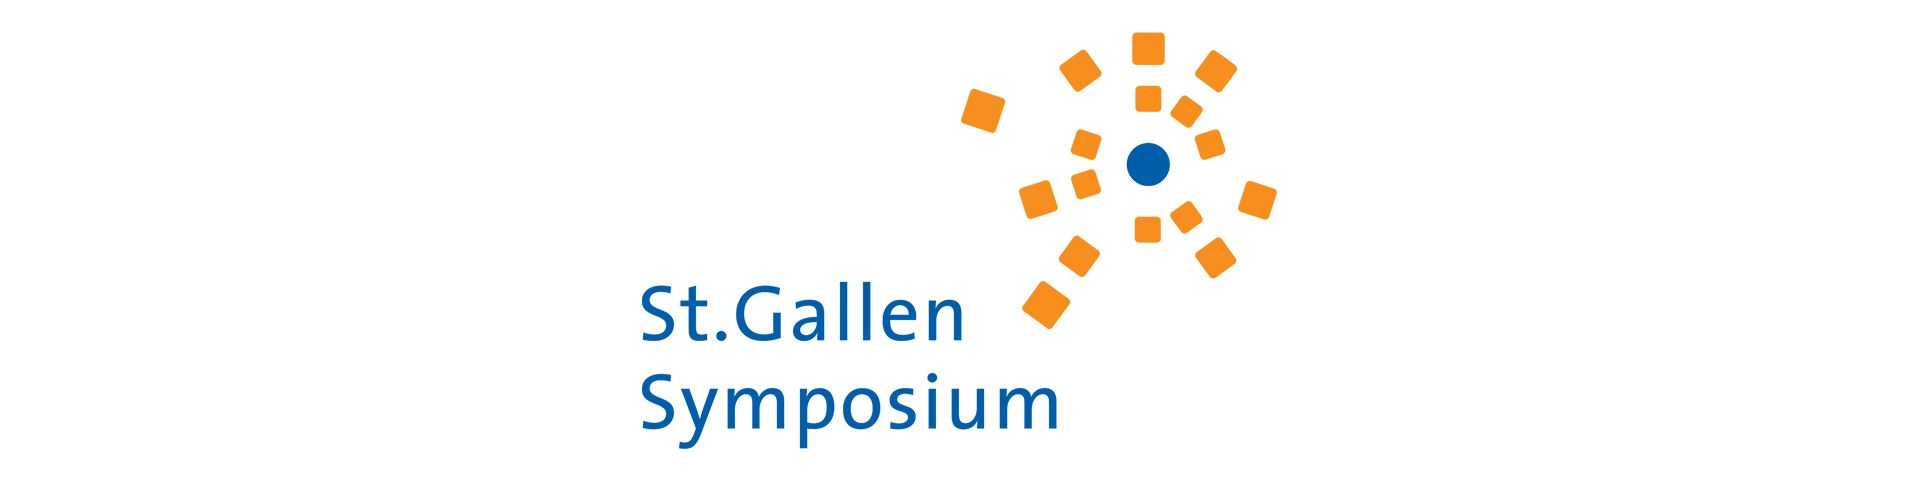 49th St. Gallen Symposium